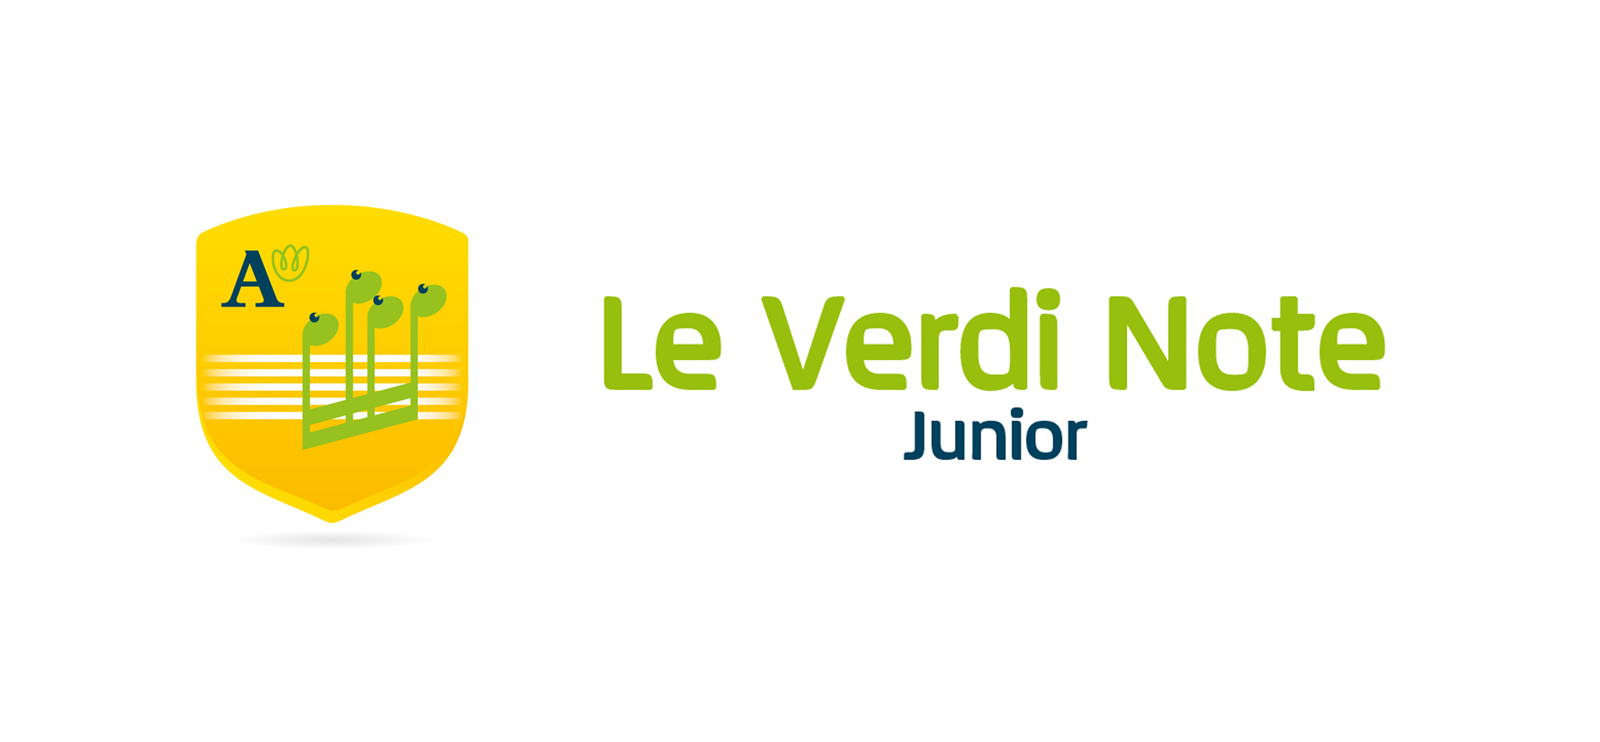 Nascono Le Verdi Note Junior!